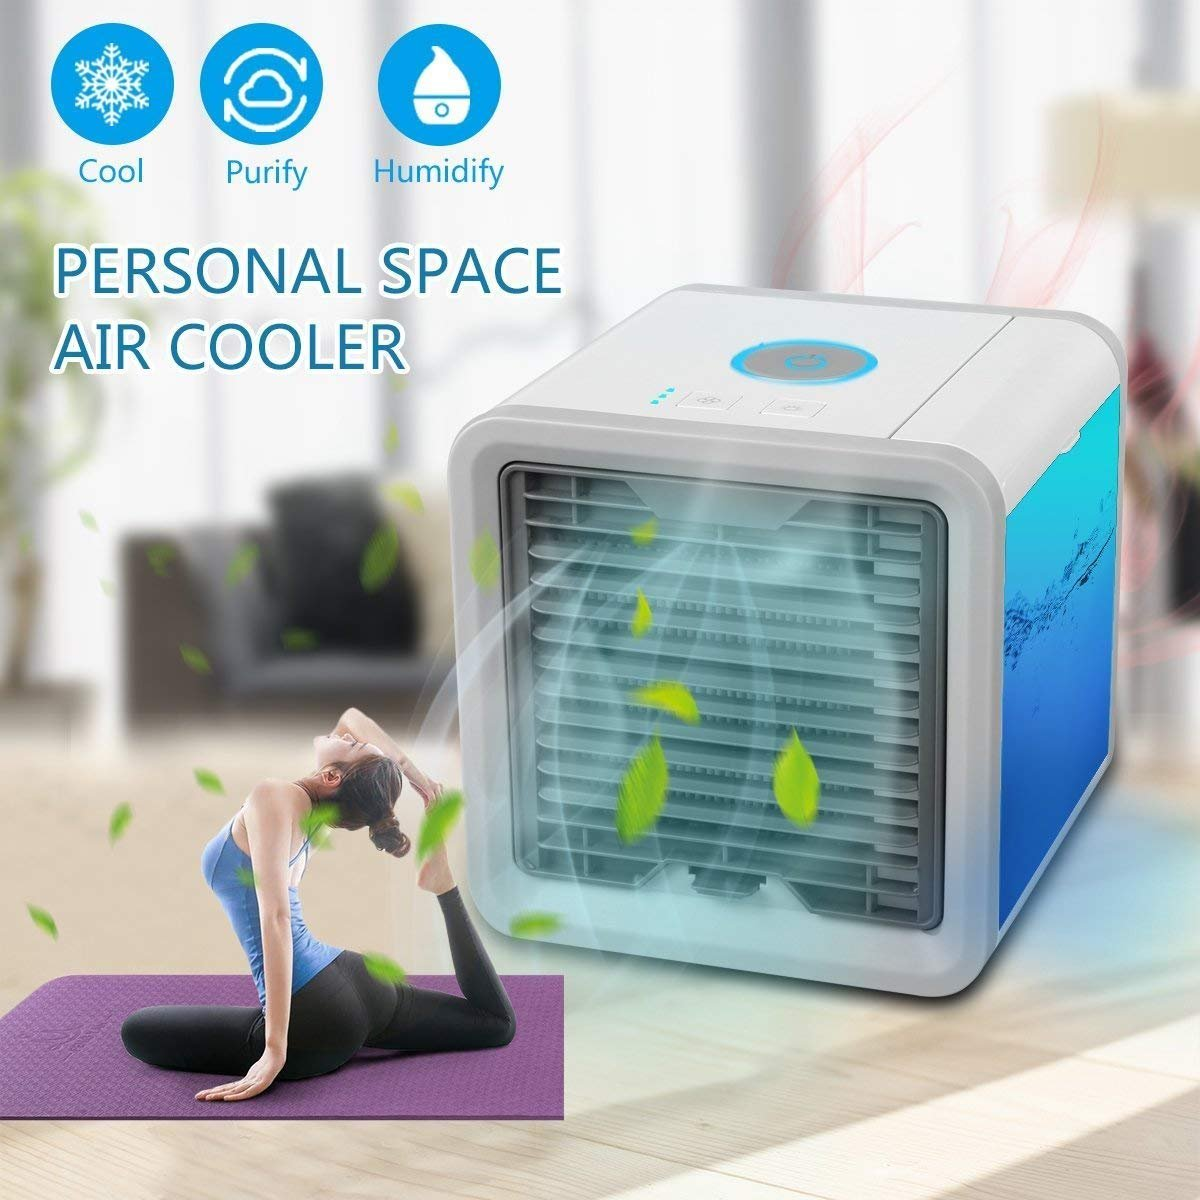 Arctic Air Portable Air Conditioner - Mini Air Conditioner Fan 3 in 1 USB Air Cooler Personal Air Purifier Humidifier with 7 Colors LED Lights Cooling Desktop Fan for Home Office Bedroom (White) HBVAN